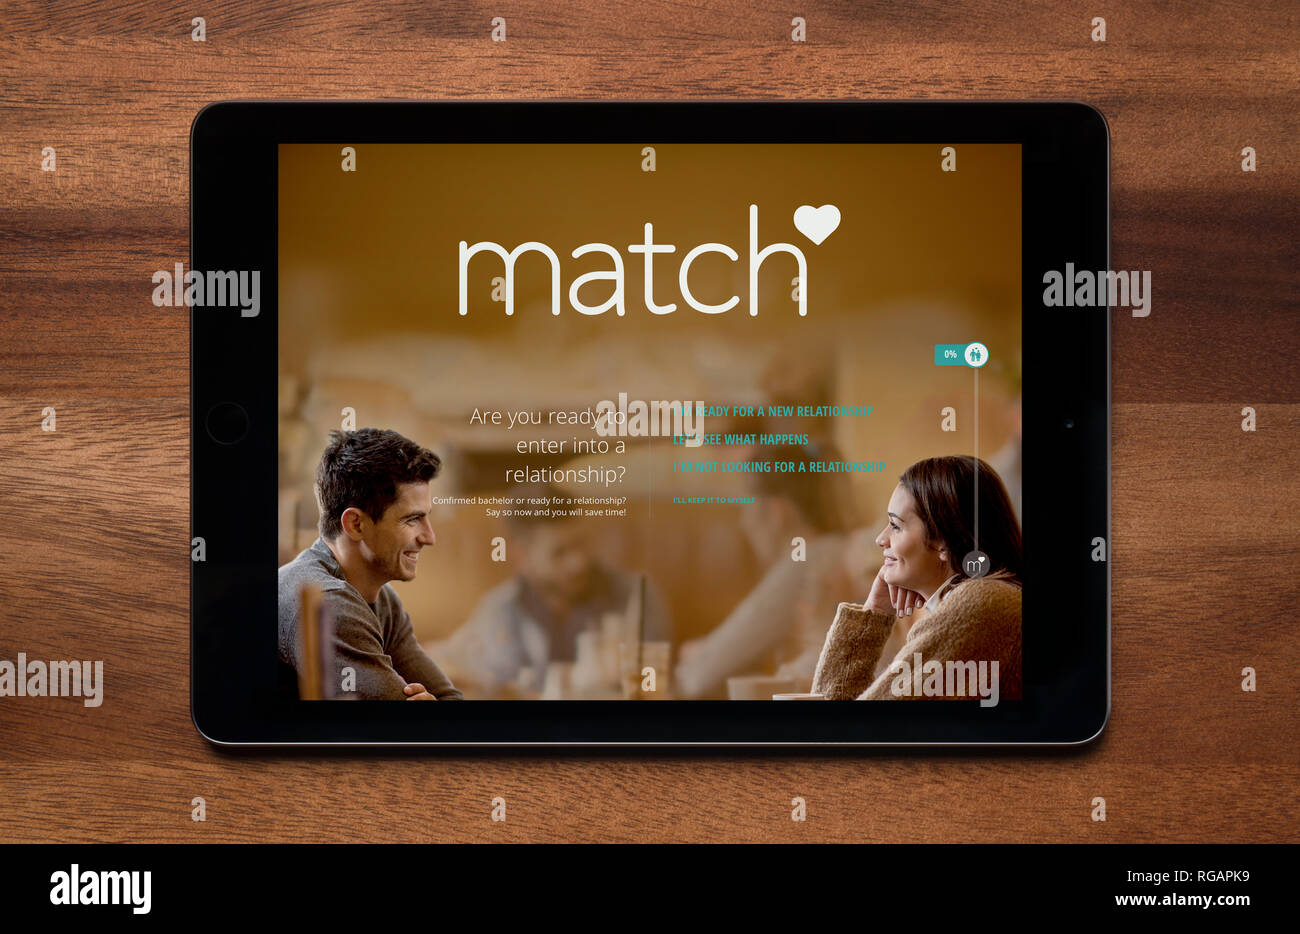 The website of Match.com is seen on an iPad tablet, which is resting on a wooden table (Editorial use only). - Stock Image